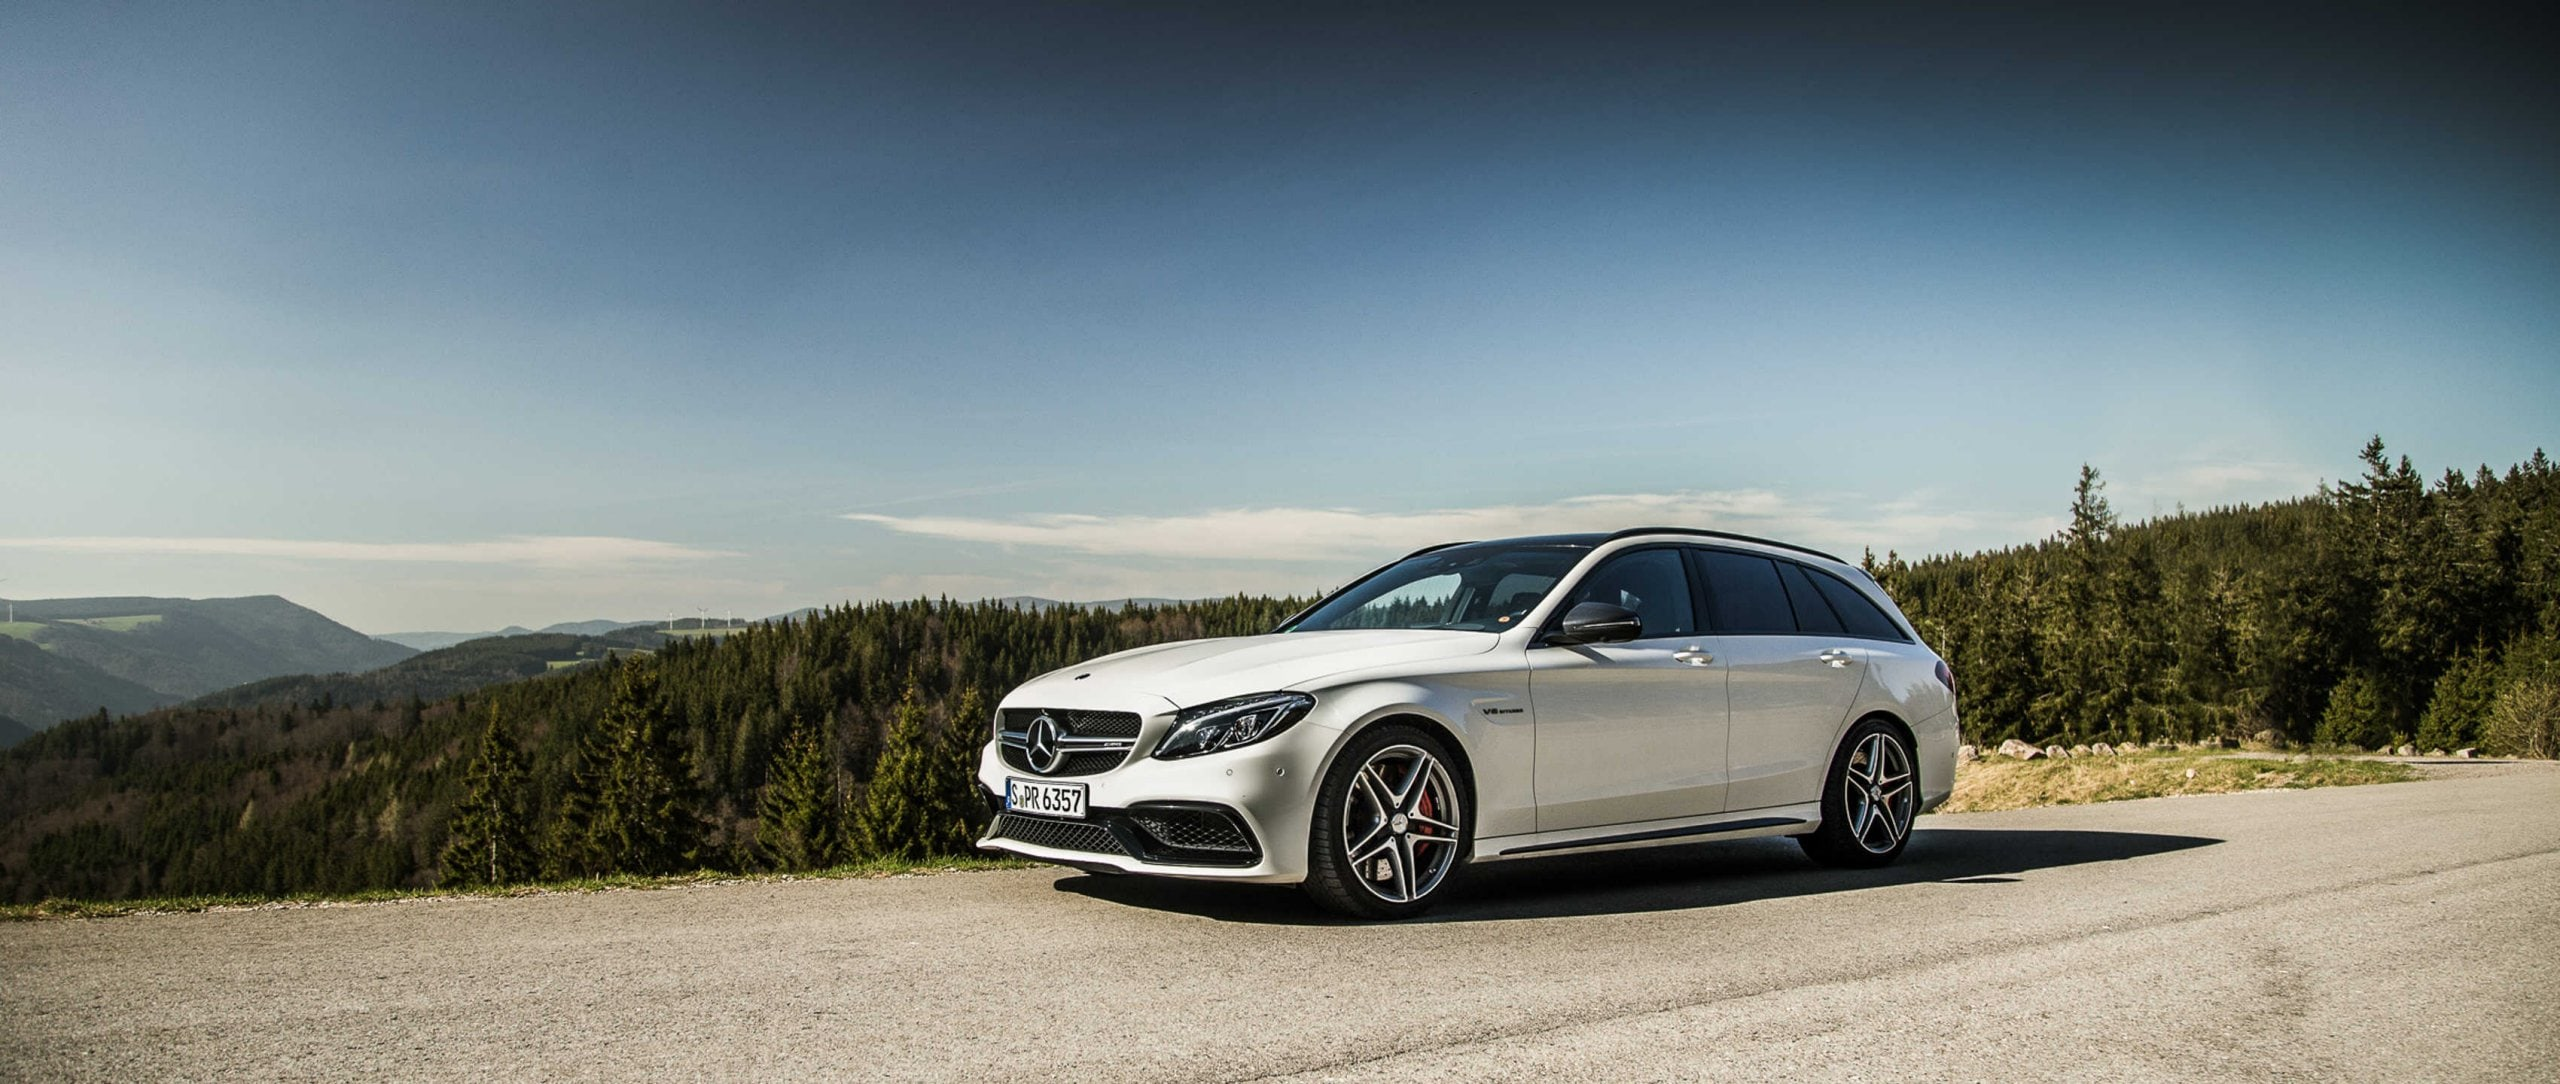 Mercedes-AMG C 63 S Estate (S 205): side view in front of mountain scenery.